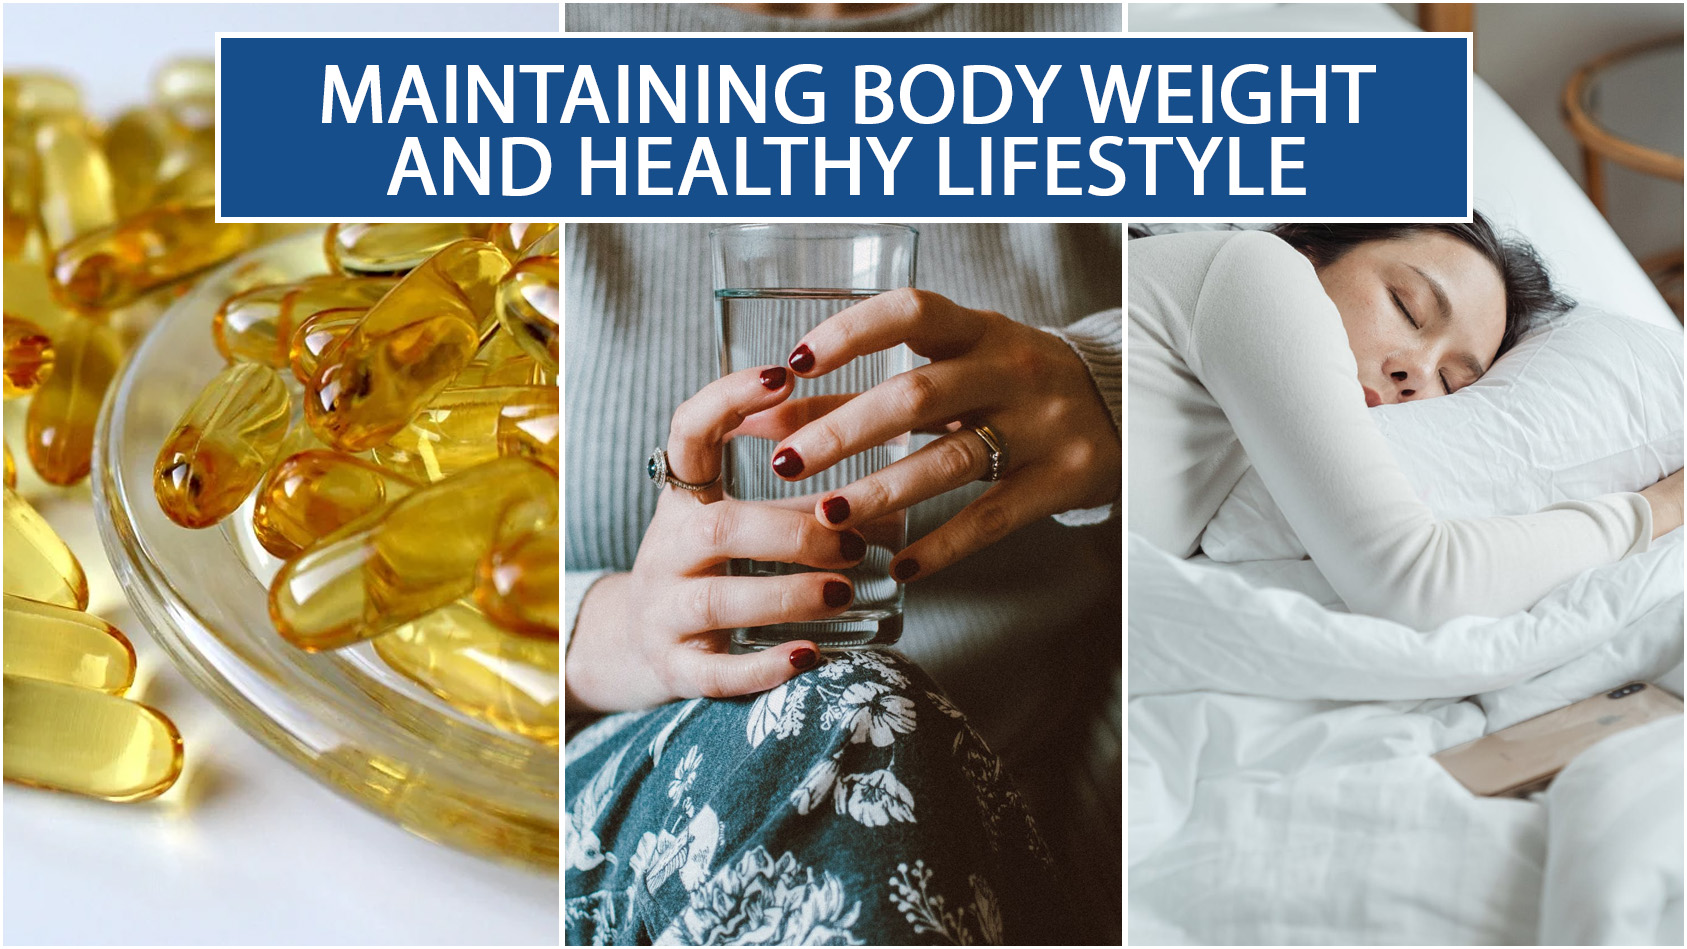 MAINTAINING BODY WEIGHT AND HEALTHY LIFESTYLE